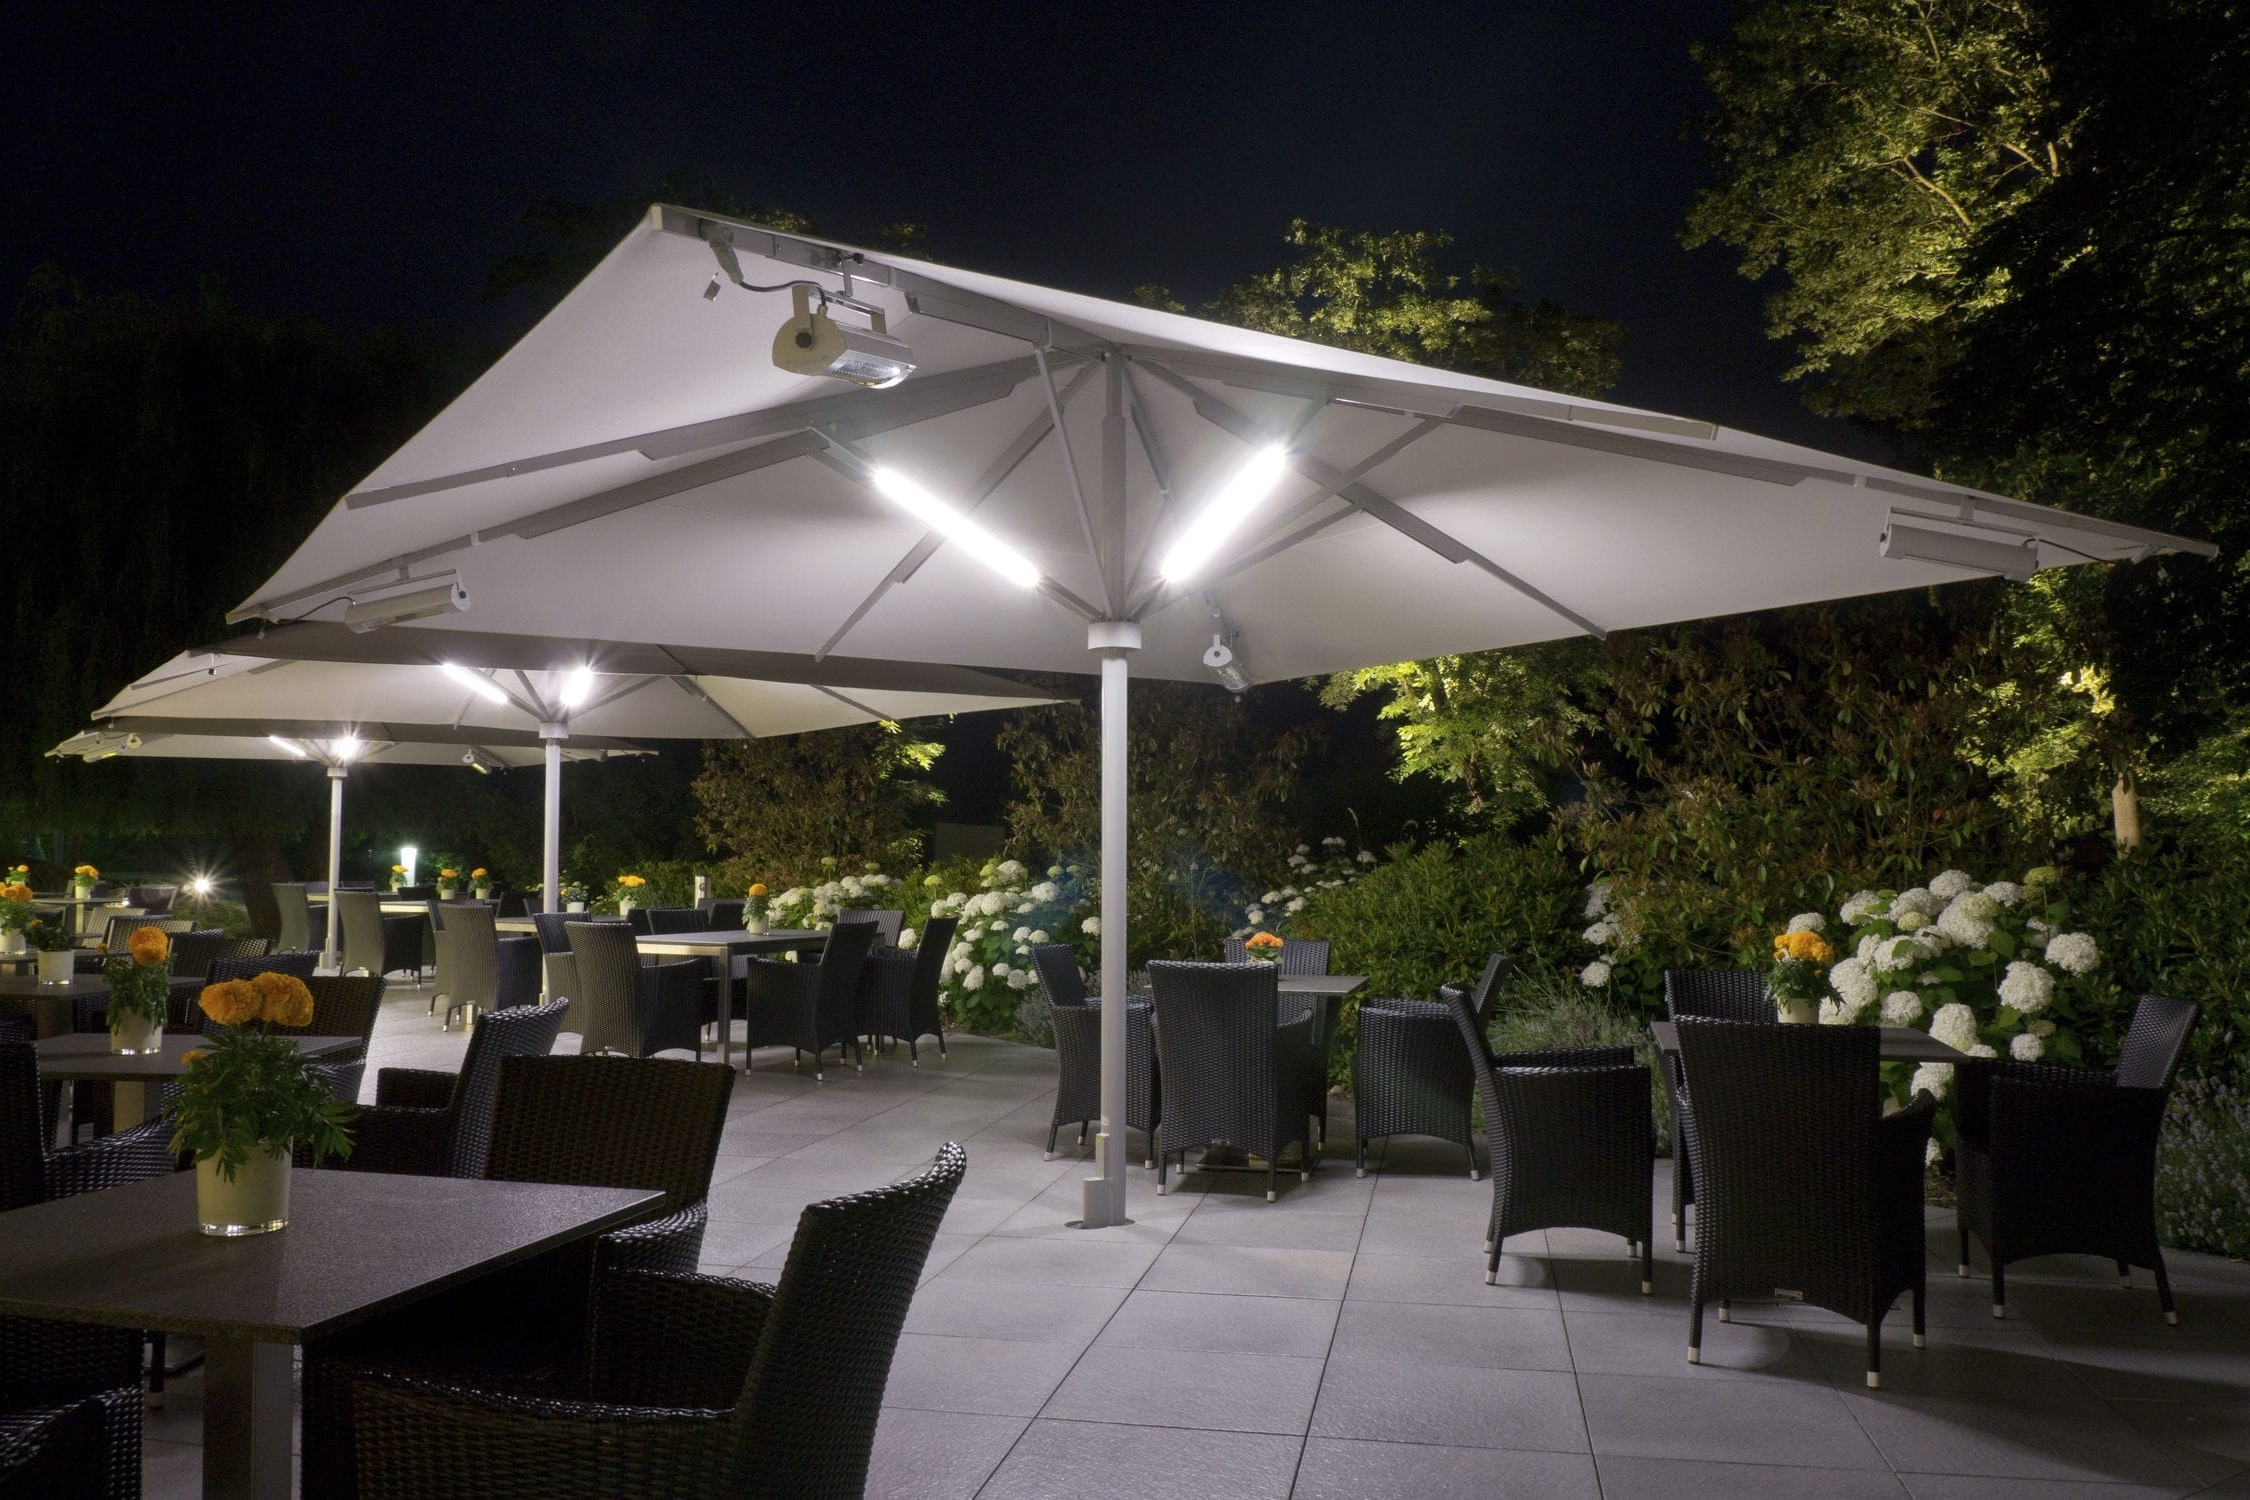 Best Patio Umbrella With Solar Lights And Speakers F71X About Throughout Latest Solar Lights For Patio Umbrellas (View 3 of 20)